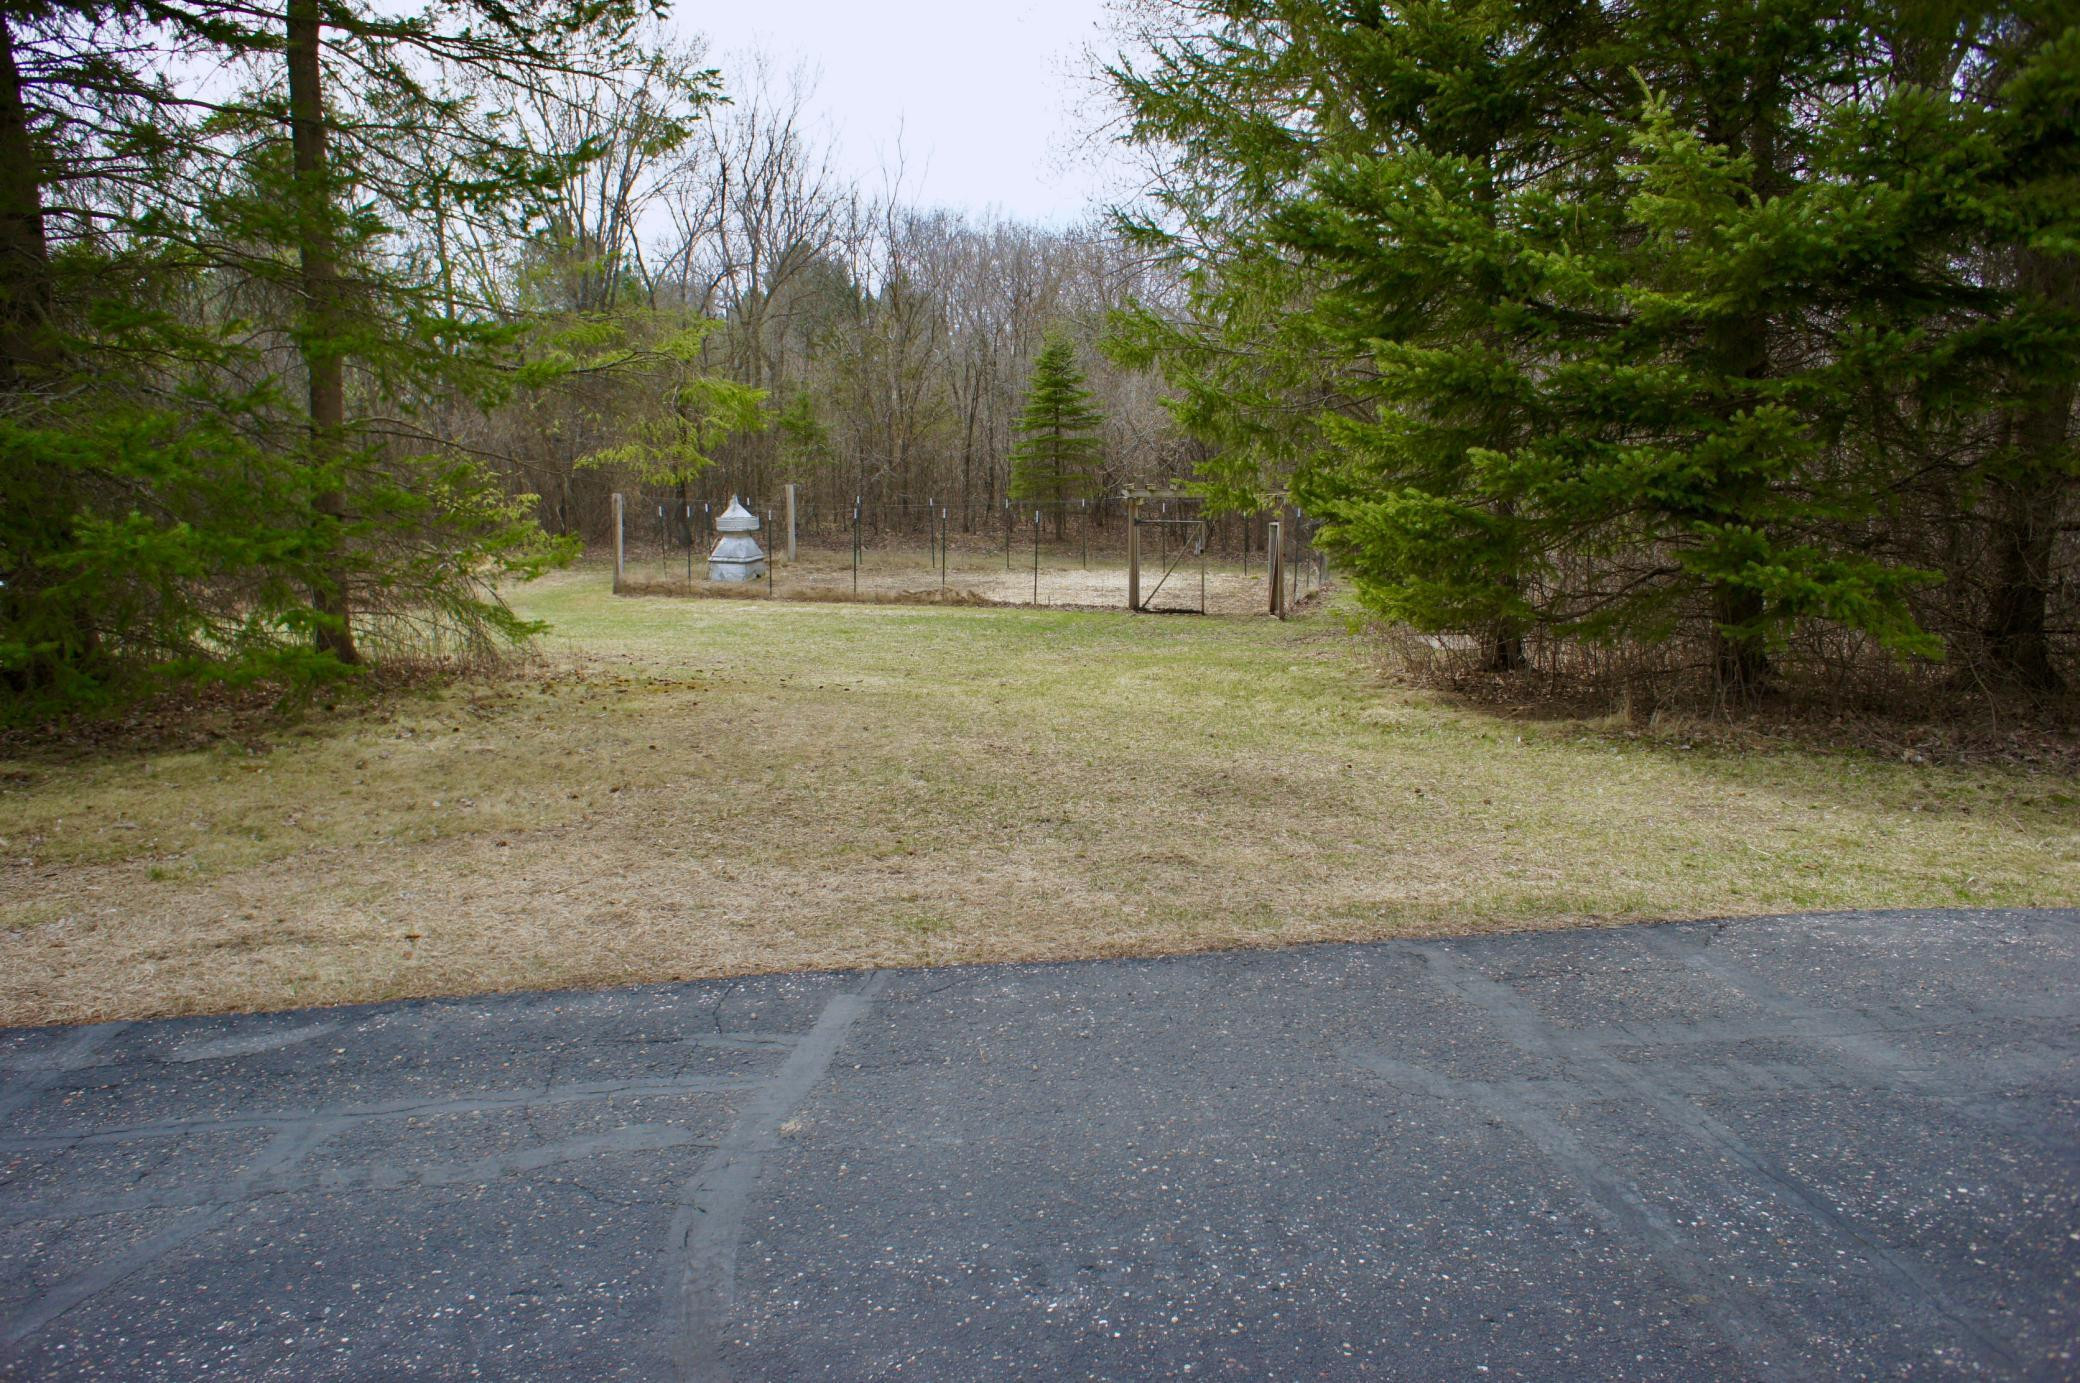 Here's your already fenced garden area that is just off a trail that circumvents the whole property.